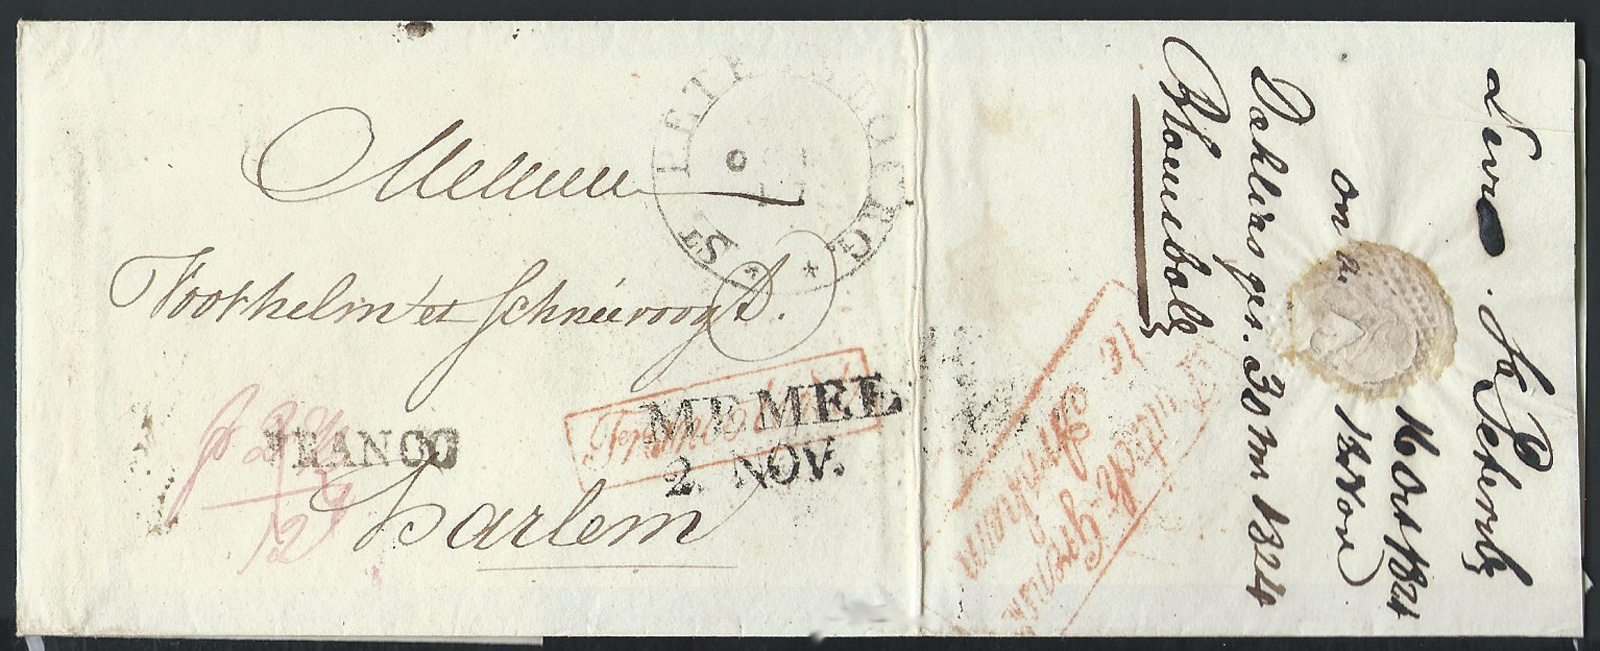 "RUSSIA  1824 Outer letter sheet posted to Harlem (Netherlands) stamped by large double circle  Latin script ""ST.PETERSSBOURG ** "" cds, alongside transit MEMEL and red boxed ""Franco Tout"" handstamp. Reverse shows border entry mark "" Duitsch – Grensk / te Arnhem"".  Charged 12 decimes in manuscript. Nice and attractive"